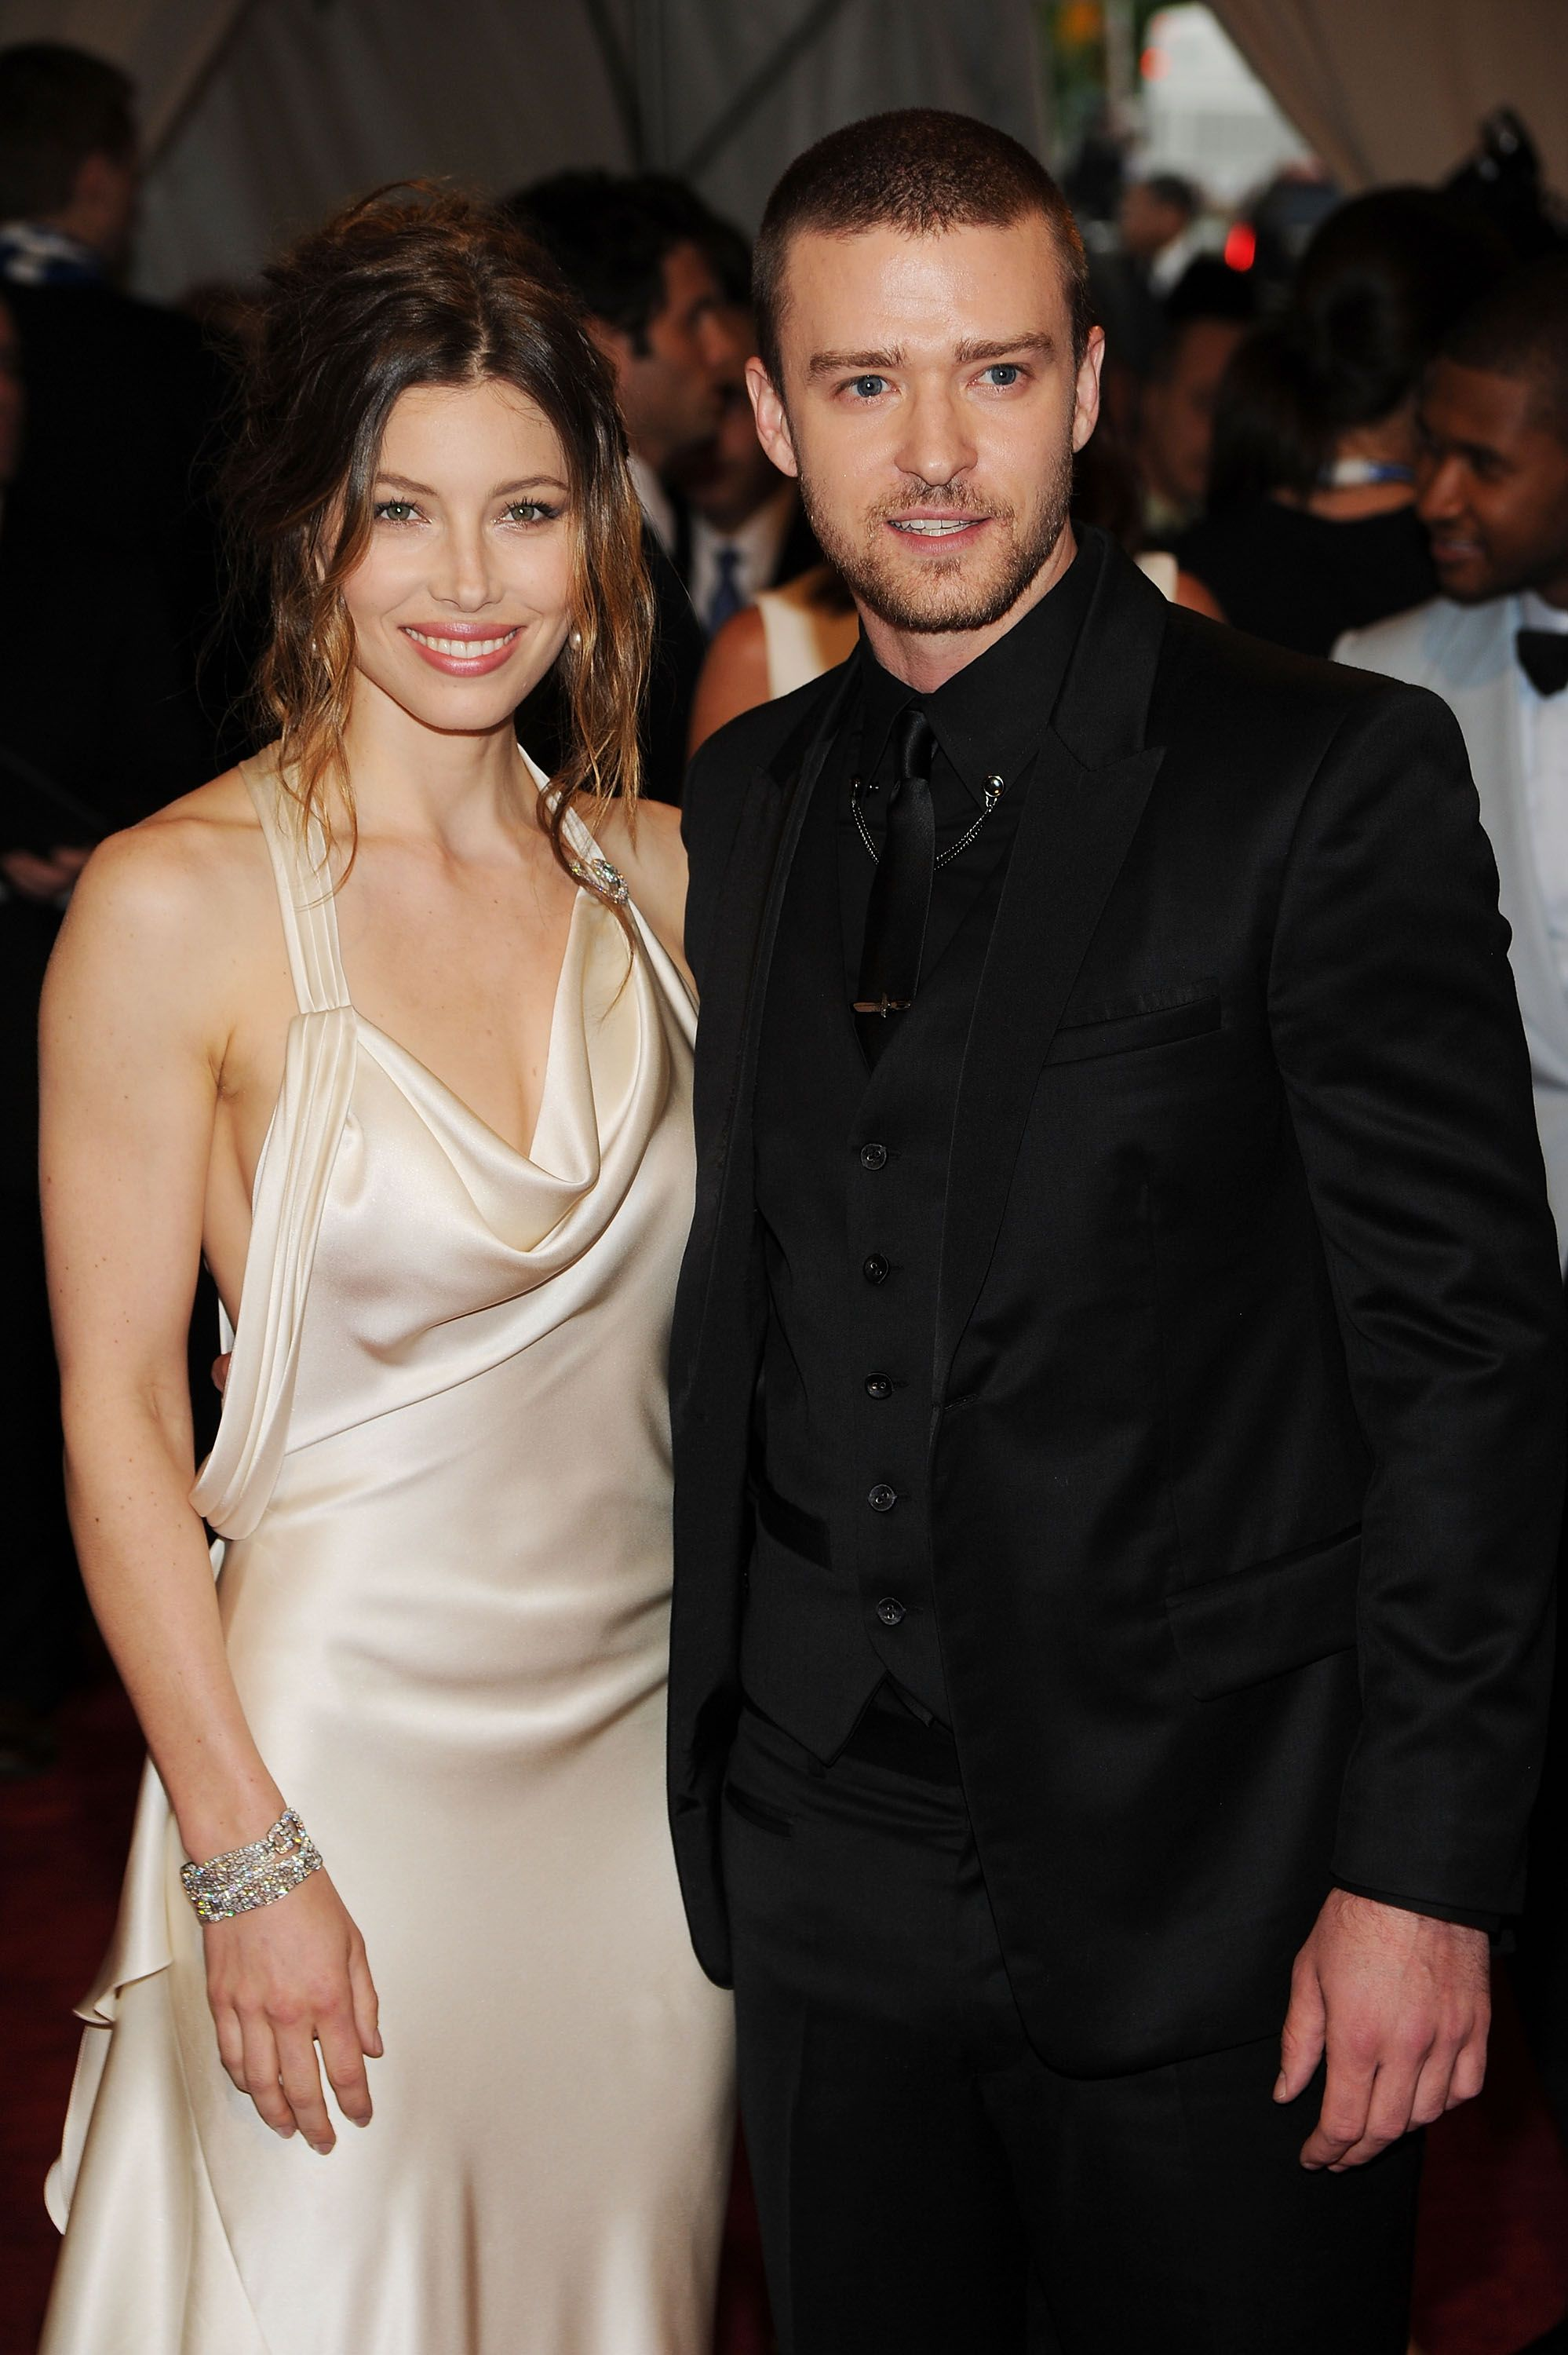 Justin Timberlake and Jessica Biel at the MET Gala, New York, 2010   Photo: Getty Images